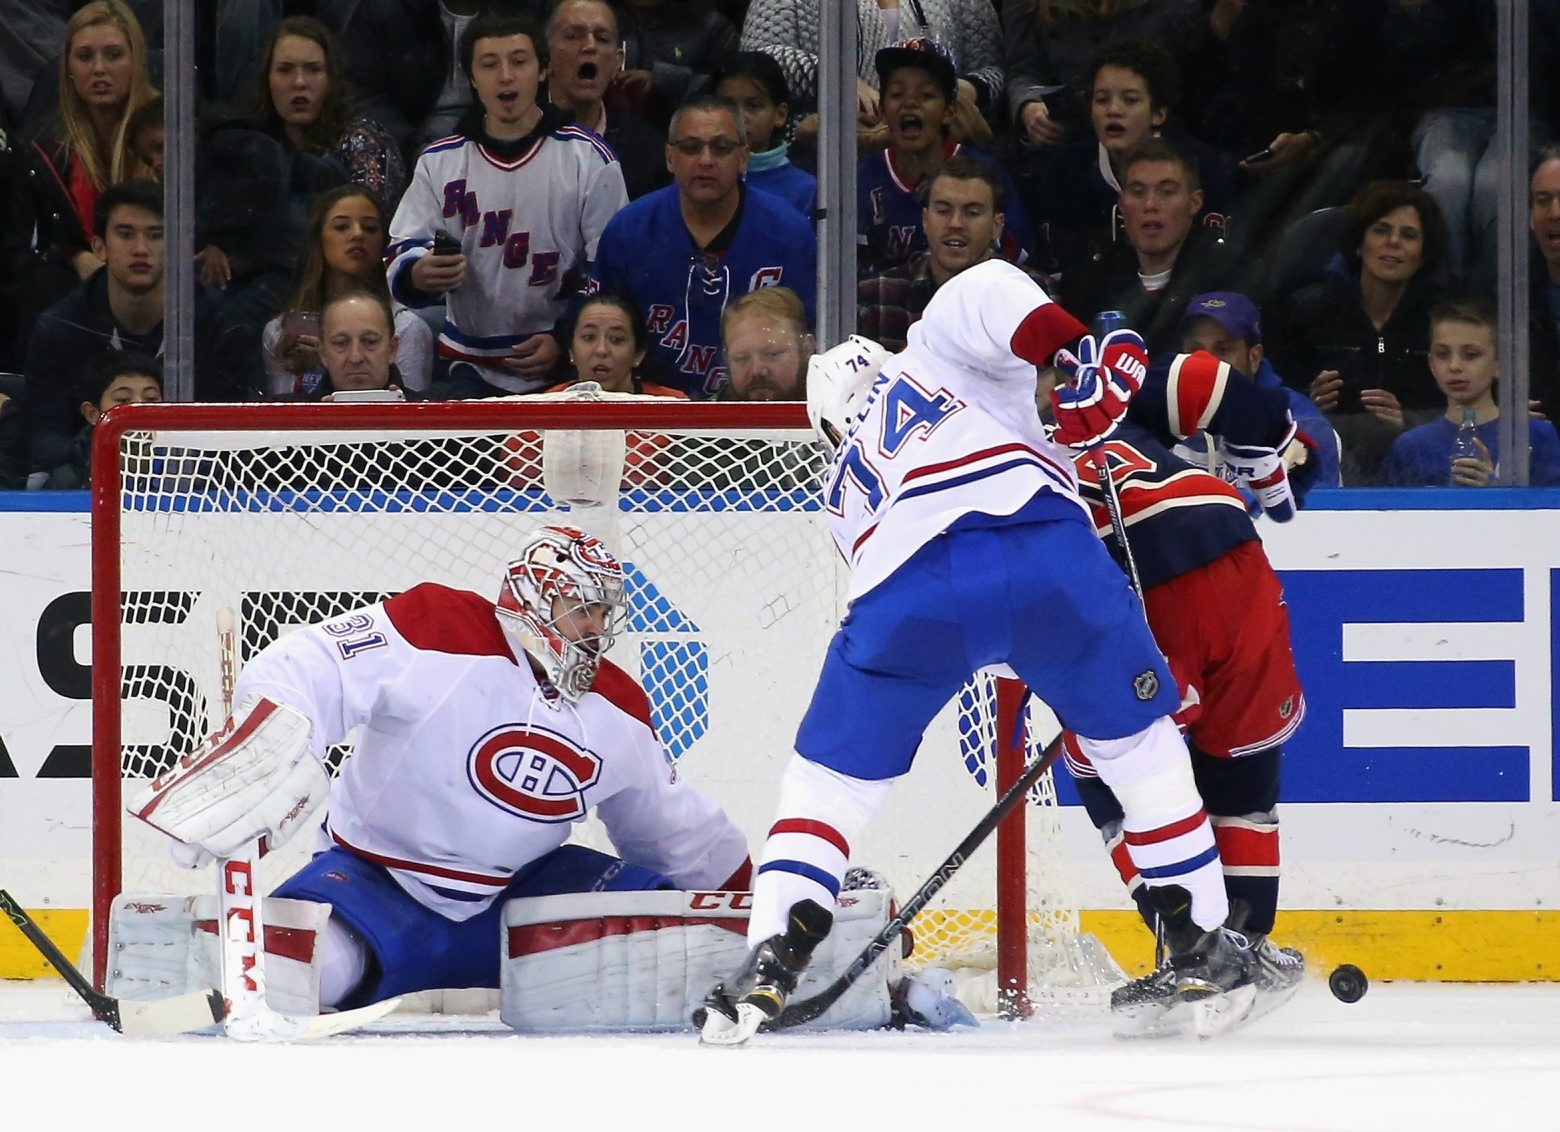 Carey Price remains out of the lineup for the Canadiens, and his return date remains unknown.